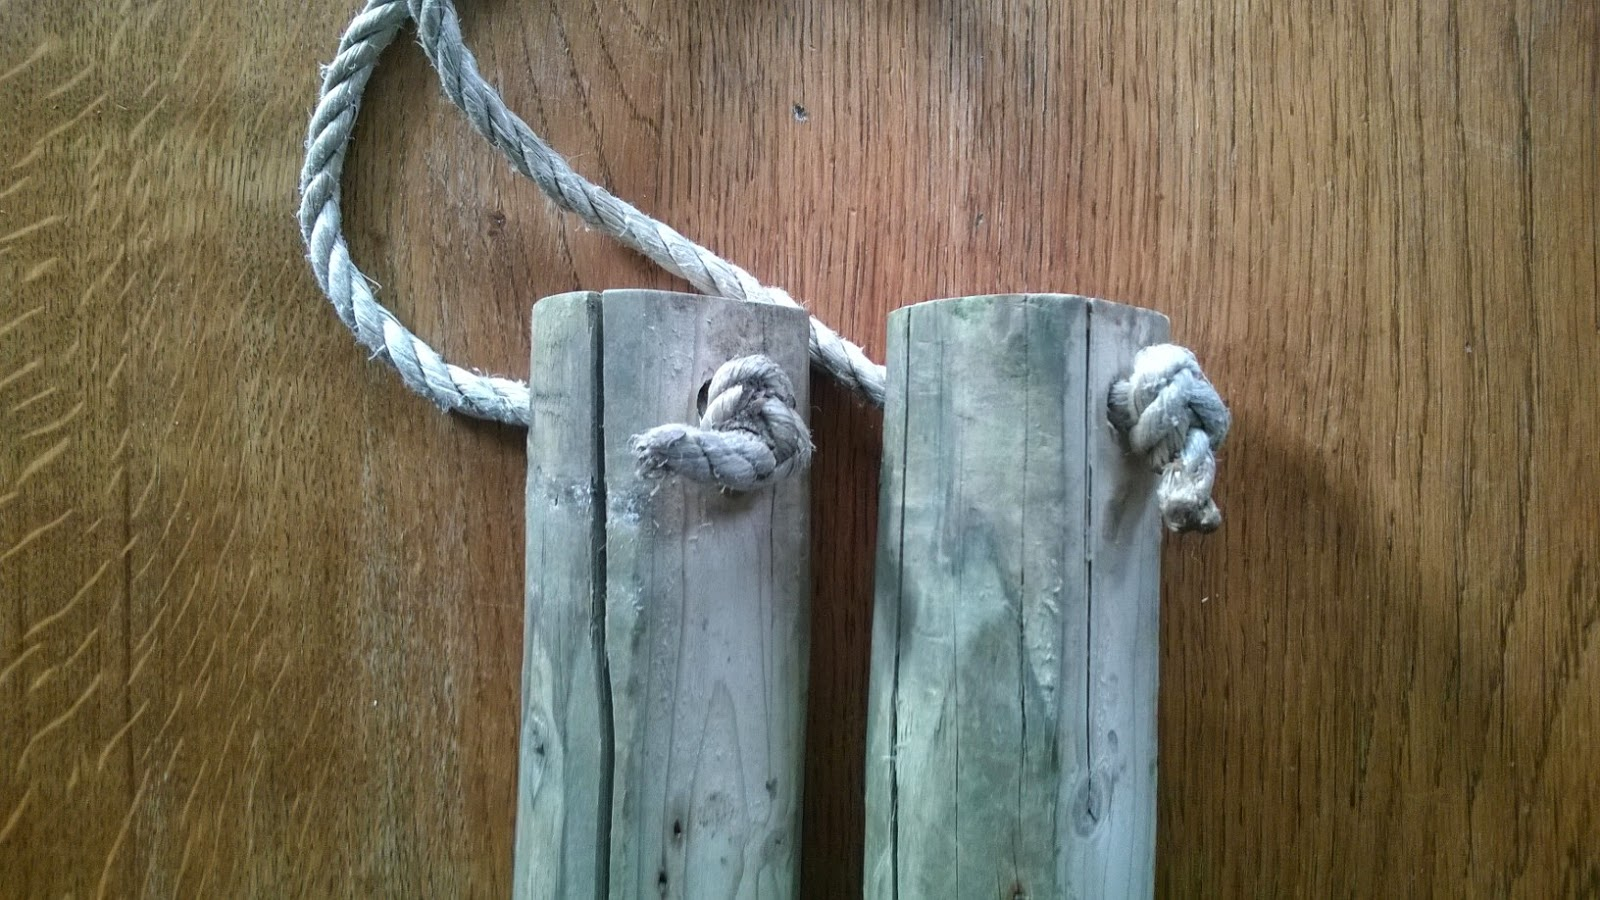 Picture of Ropes Tying Together